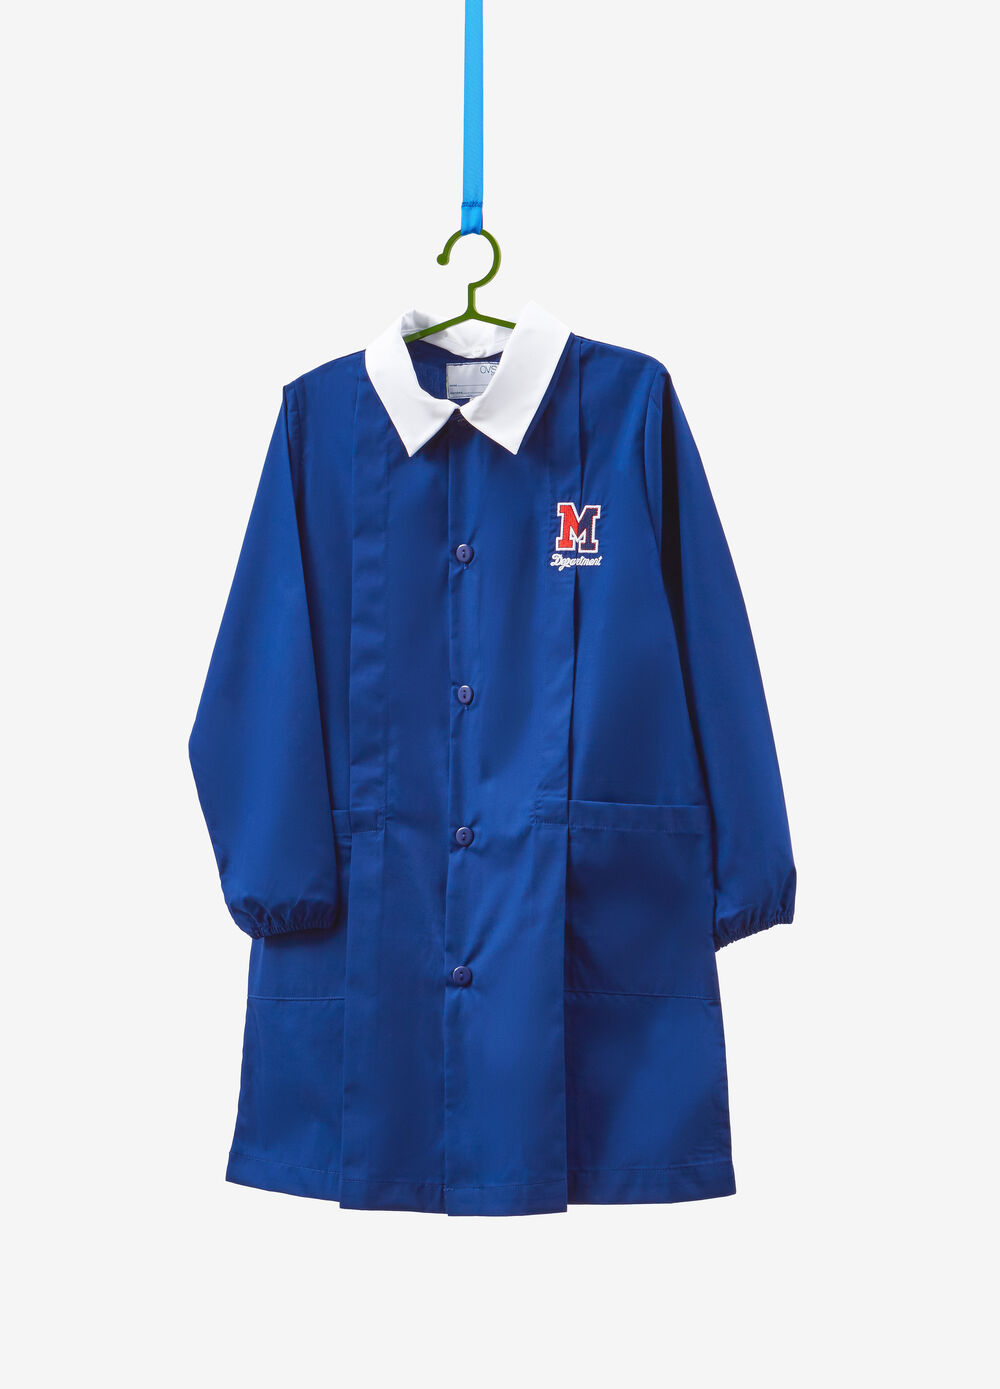 Cotton blend smock with embroidery and patch